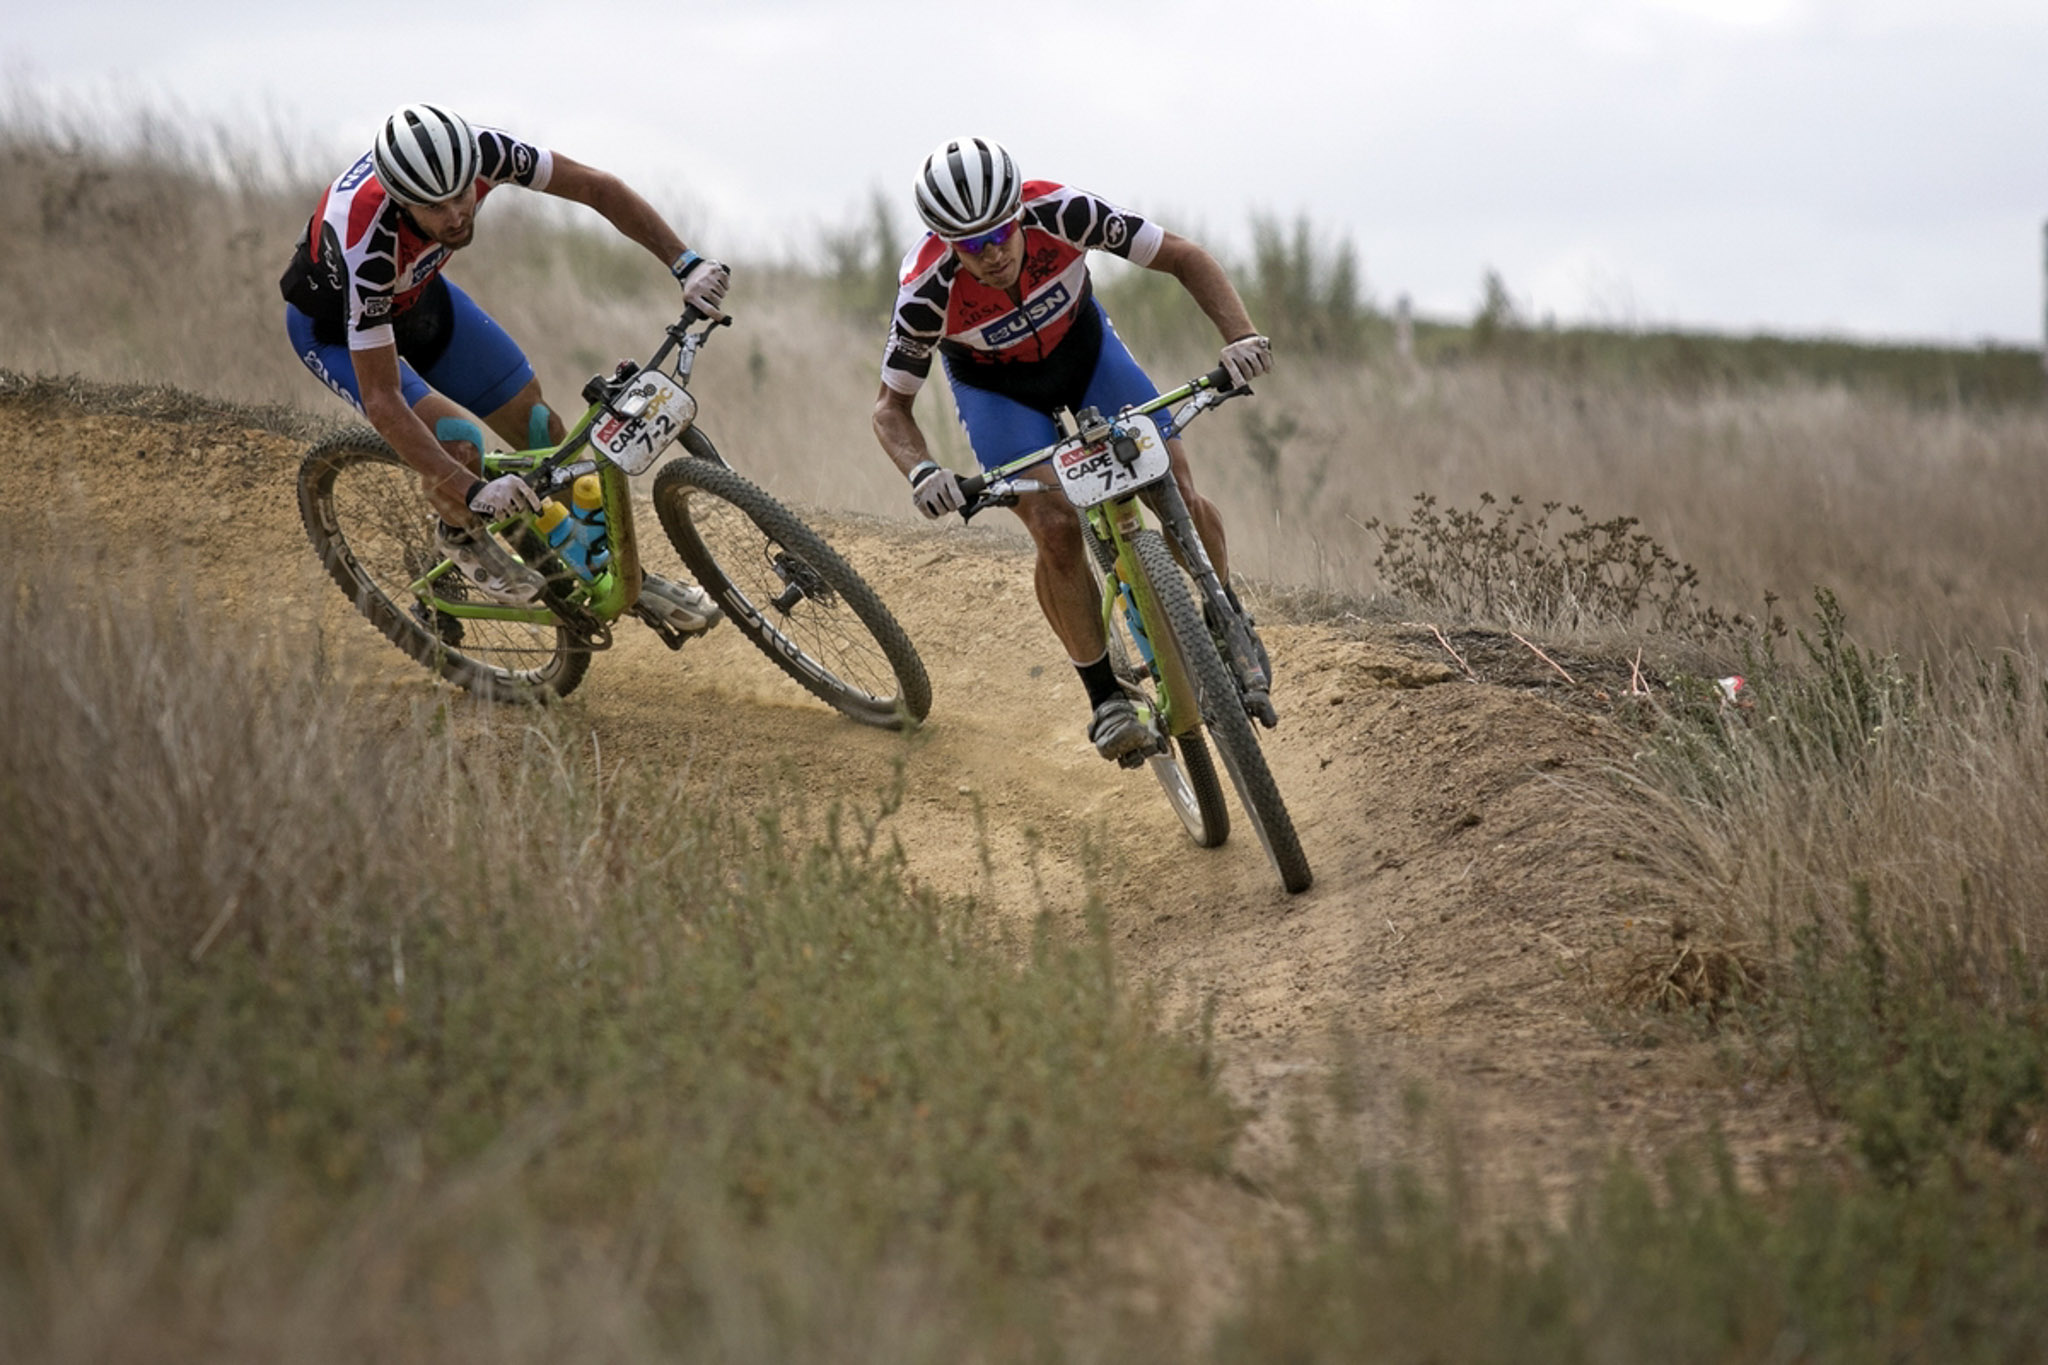 Darren Lill and Waylon Woolcock of Team USN Purefit winning the Absa African jersey overall seen here on the slopes of Meerendal during the final stage (stage 7) of the 2016 Absa Cape Epic Mountain Bike stage race from Boschendal in Stellenbosch to Meerendal Wine Estate in Durbanville, South Africa on the 20th March 2016 Photo by Mark Sampson/Cape Epic/SPORTZPICS PLEASE ENSURE THE APPROPRIATE CREDIT IS GIVEN TO THE PHOTOGRAPHER AND SPORTZPICS ALONG WITH THE ABSA CAPE EPIC ace2016